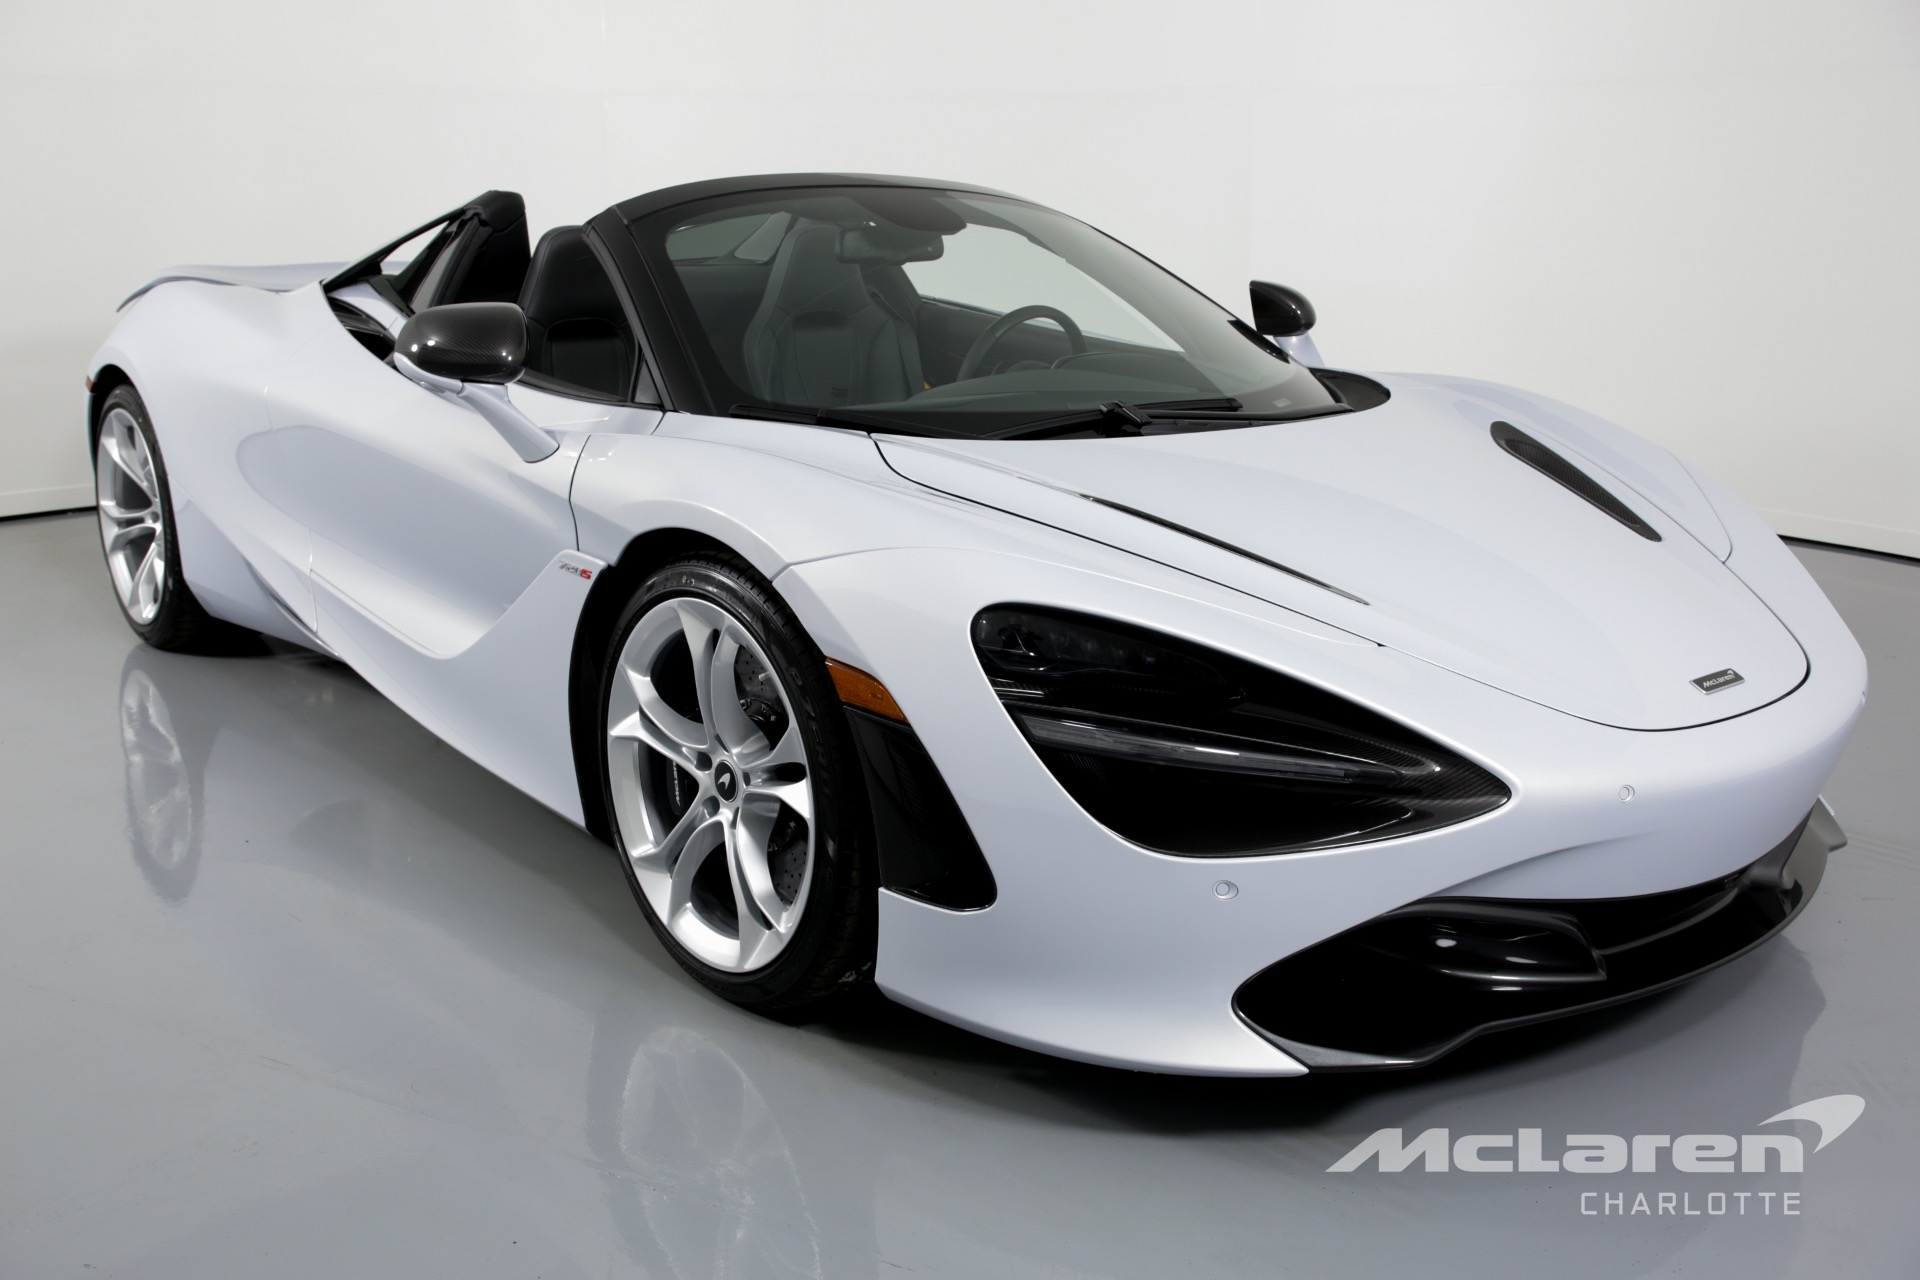 New 2020 MCLAREN 720S SPIDER LUXURY | Charlotte, NC